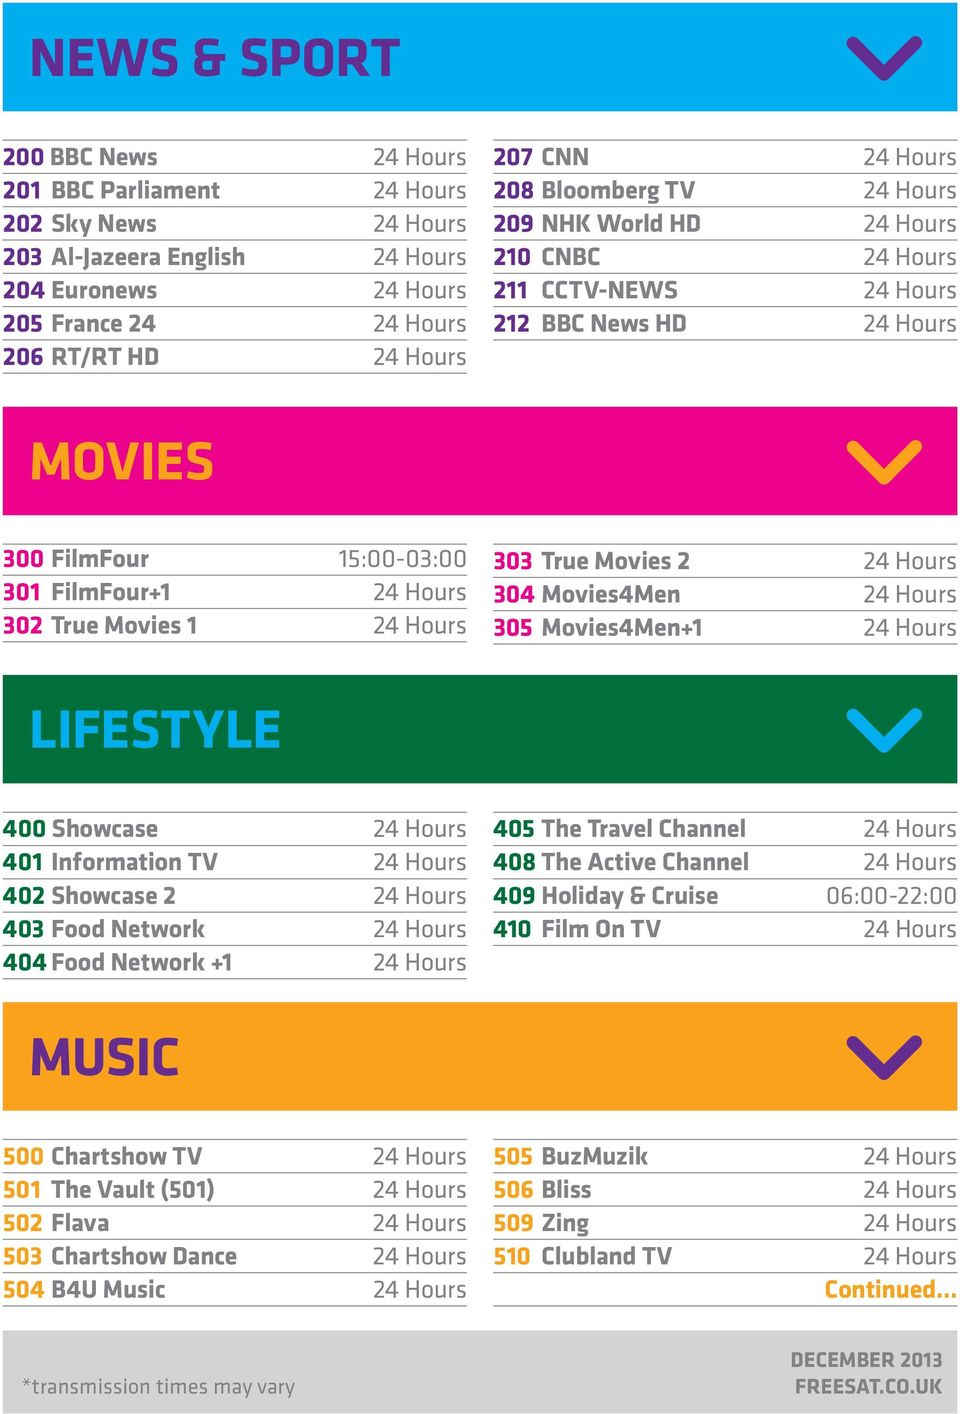 YOUR CHOICE CHANNEL ENTERTAINMENT - PDF